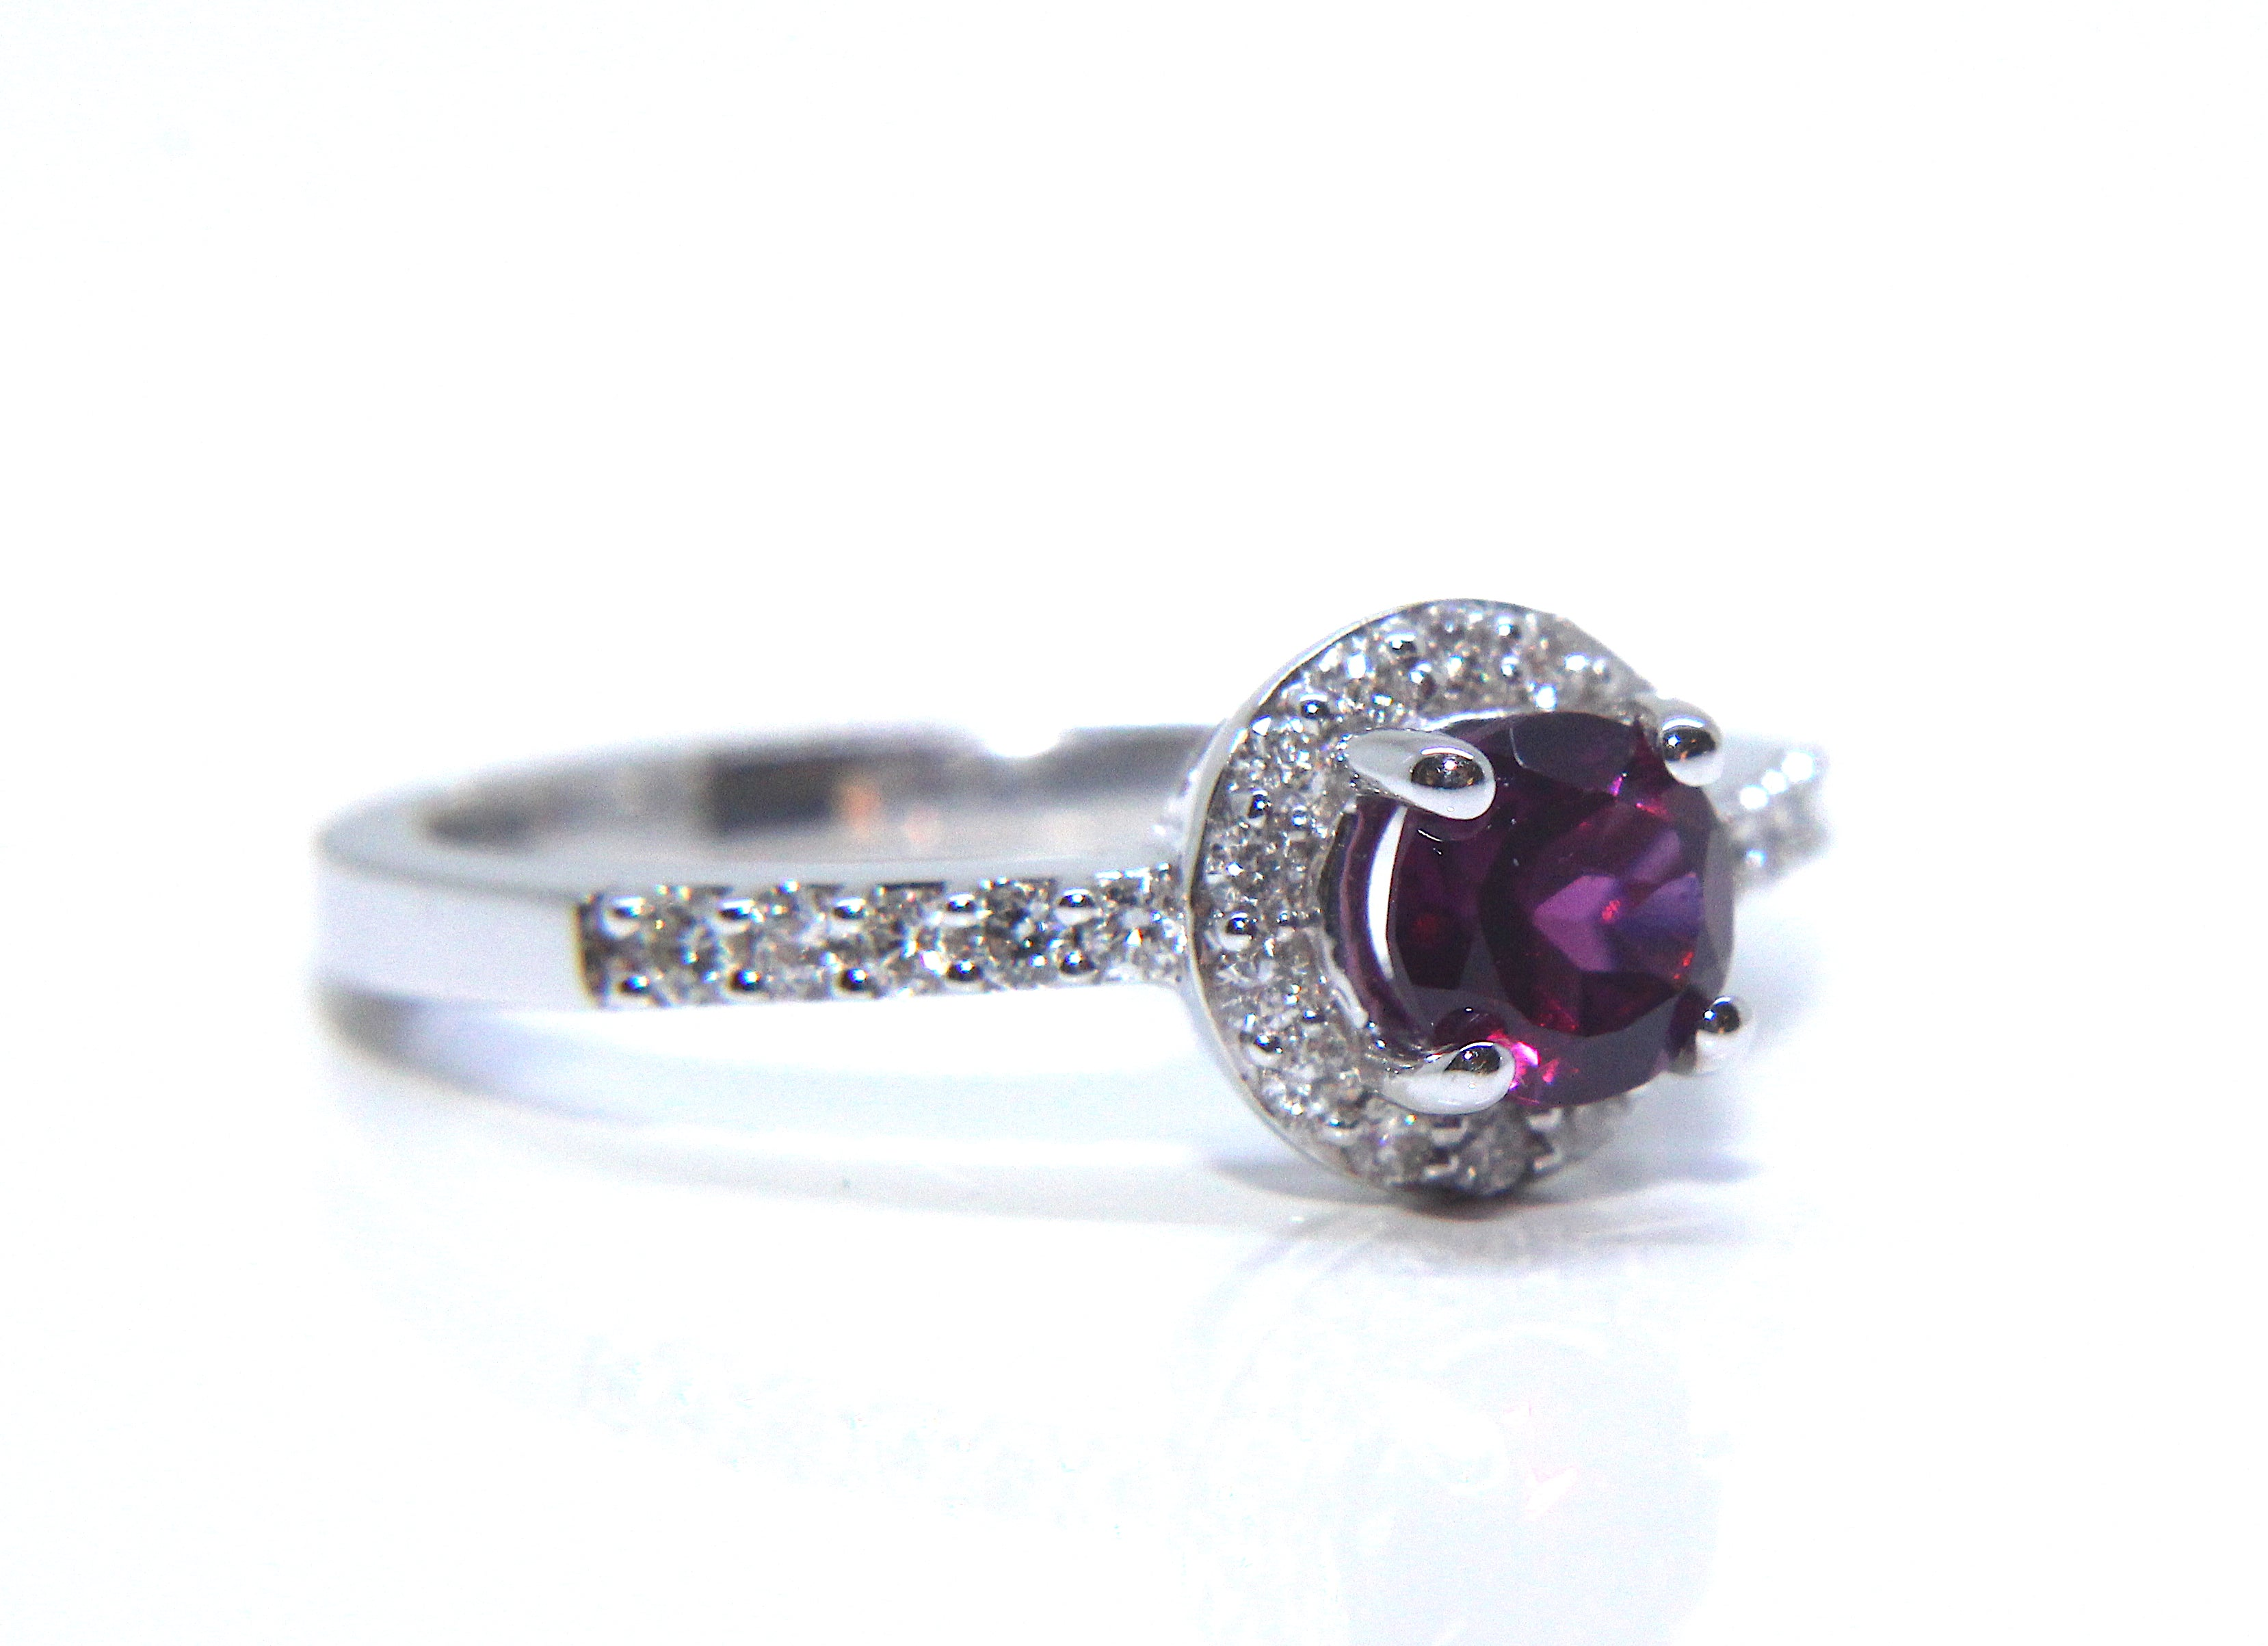 product freya garnet jewellery kata collection ring silver gold diamond white